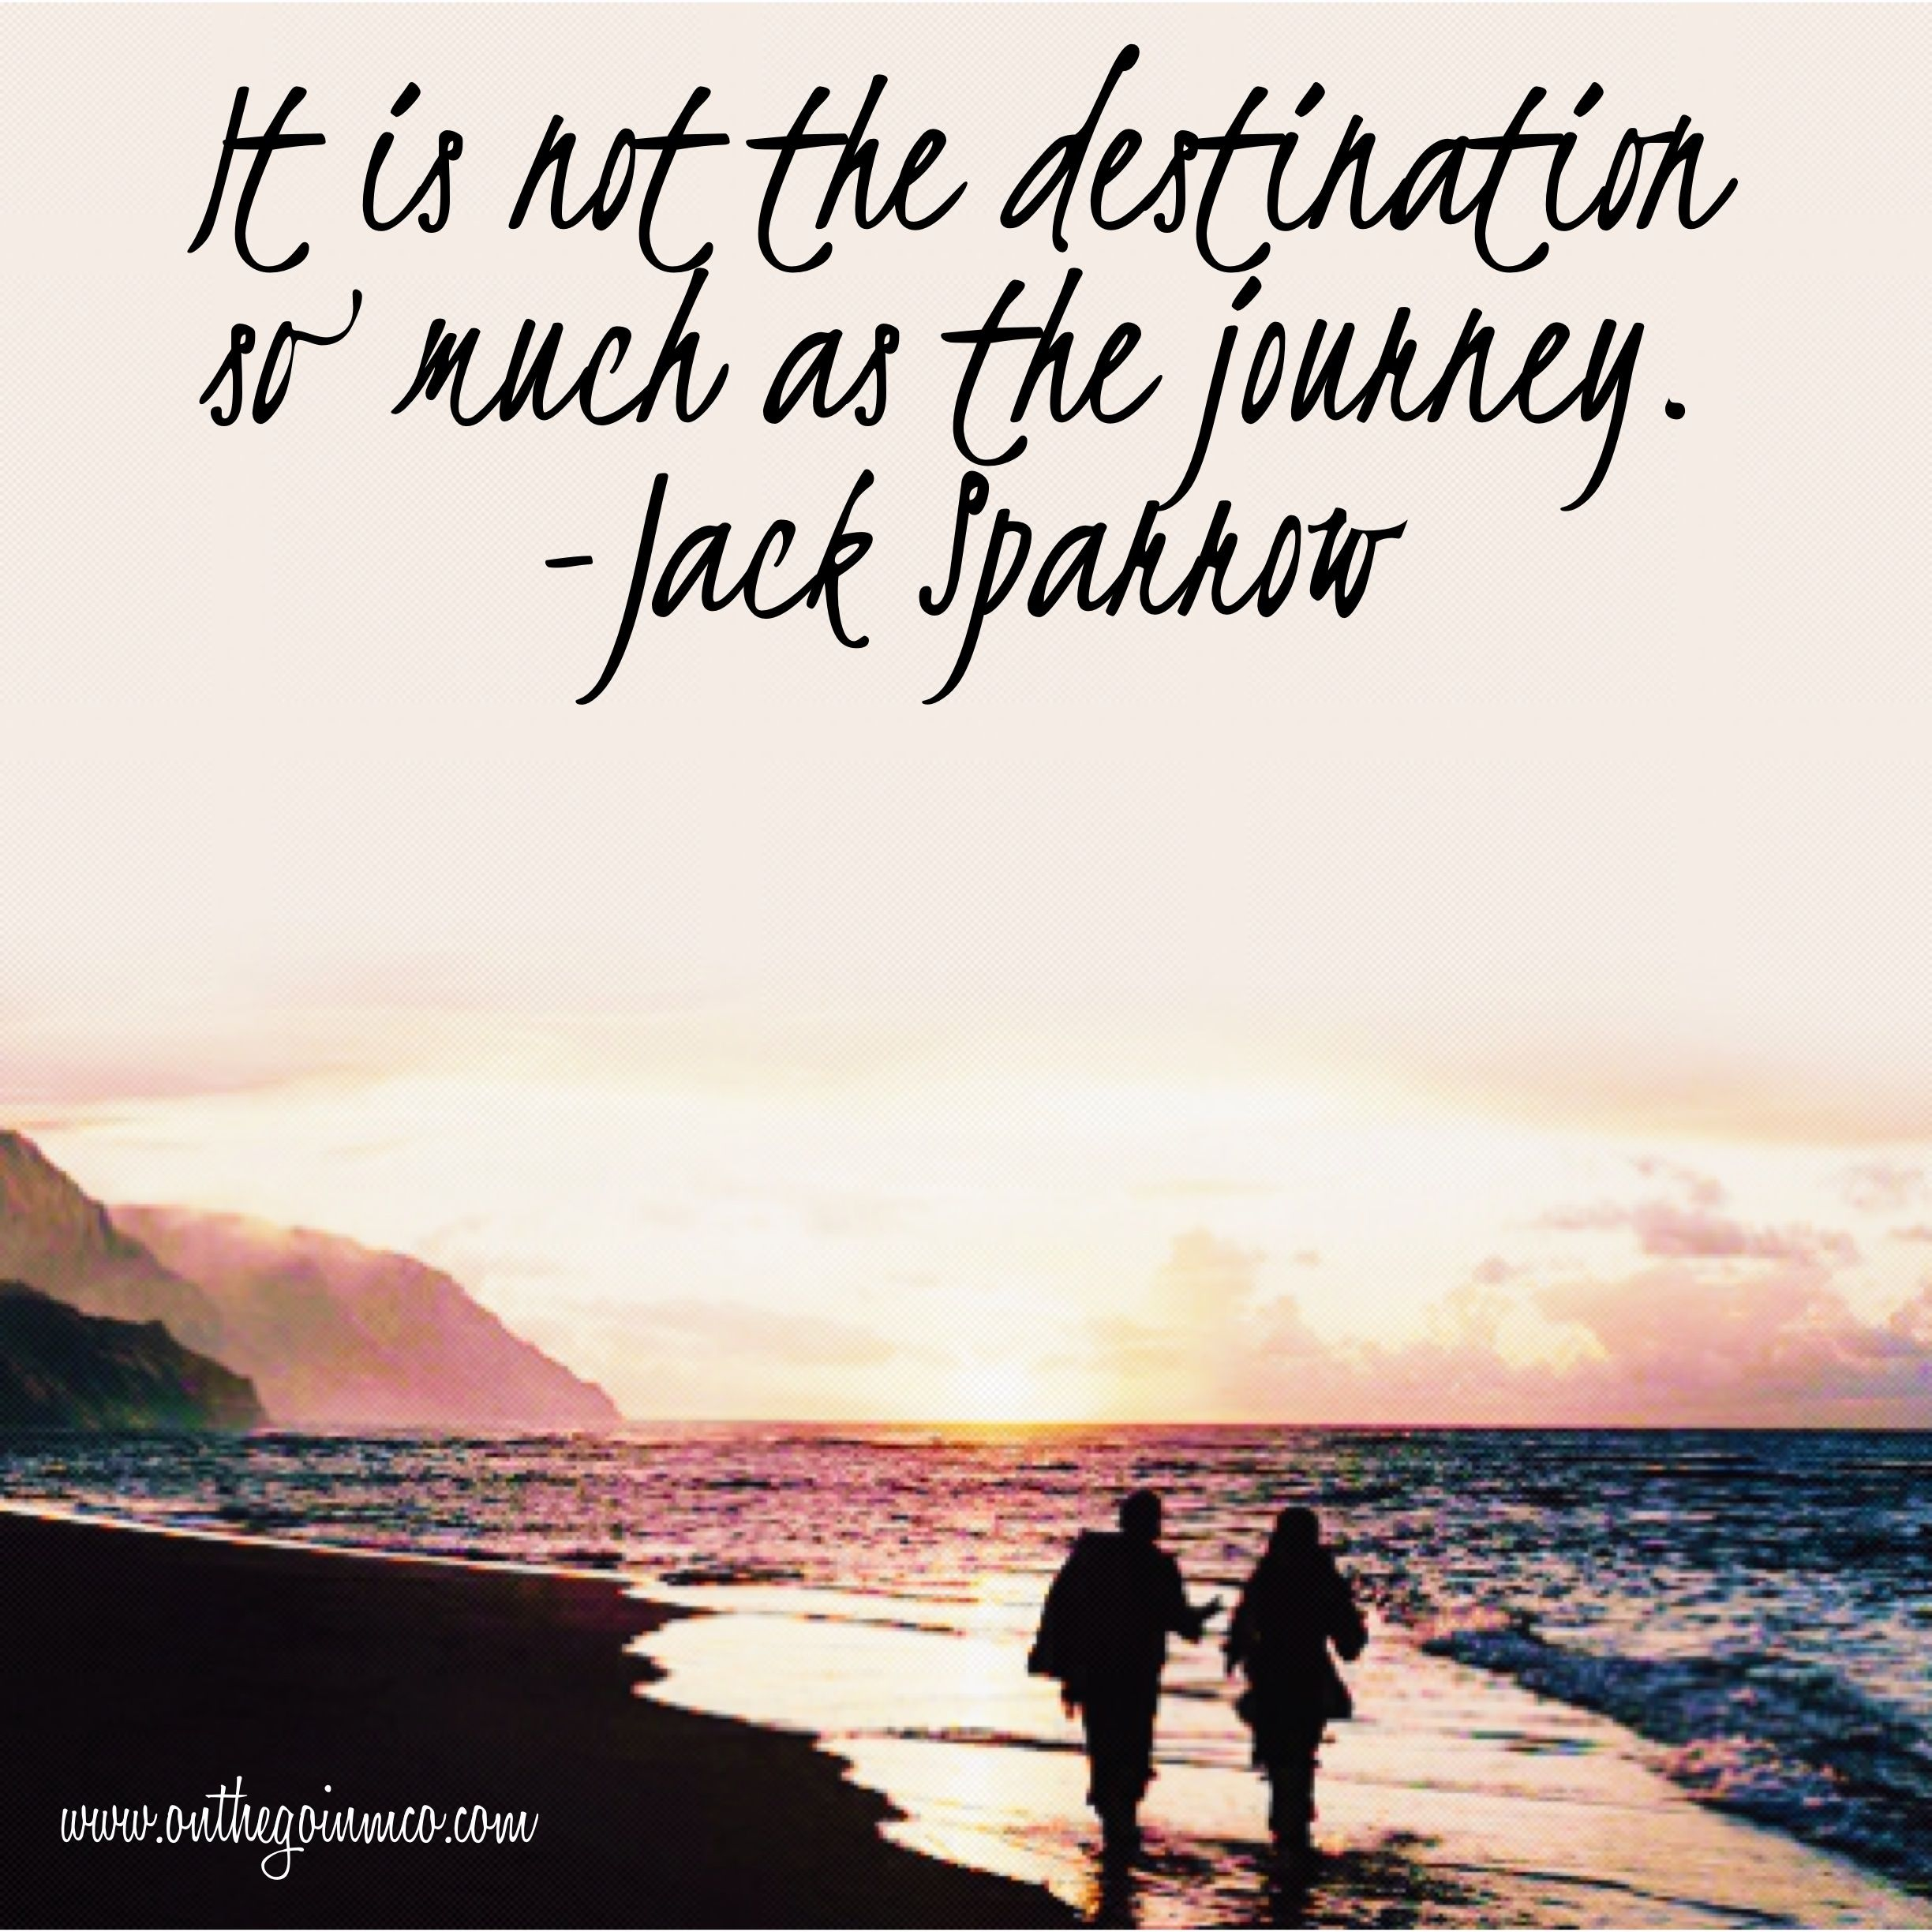 Quotes Journey: It Is Not The Destination So Much As The Journey